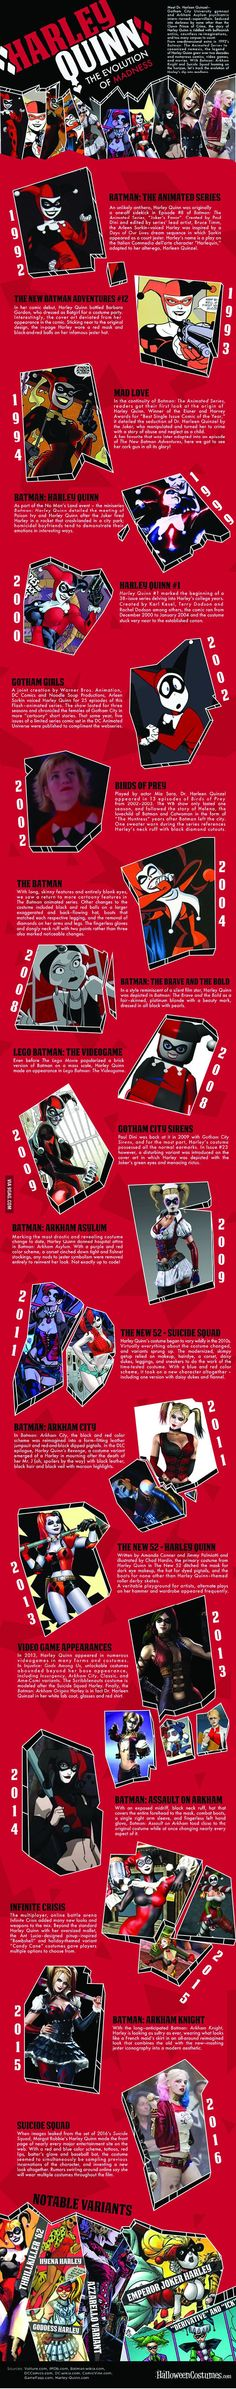 Witness the Evolution of Harley Quinn in This Insanely Detailed Infographic